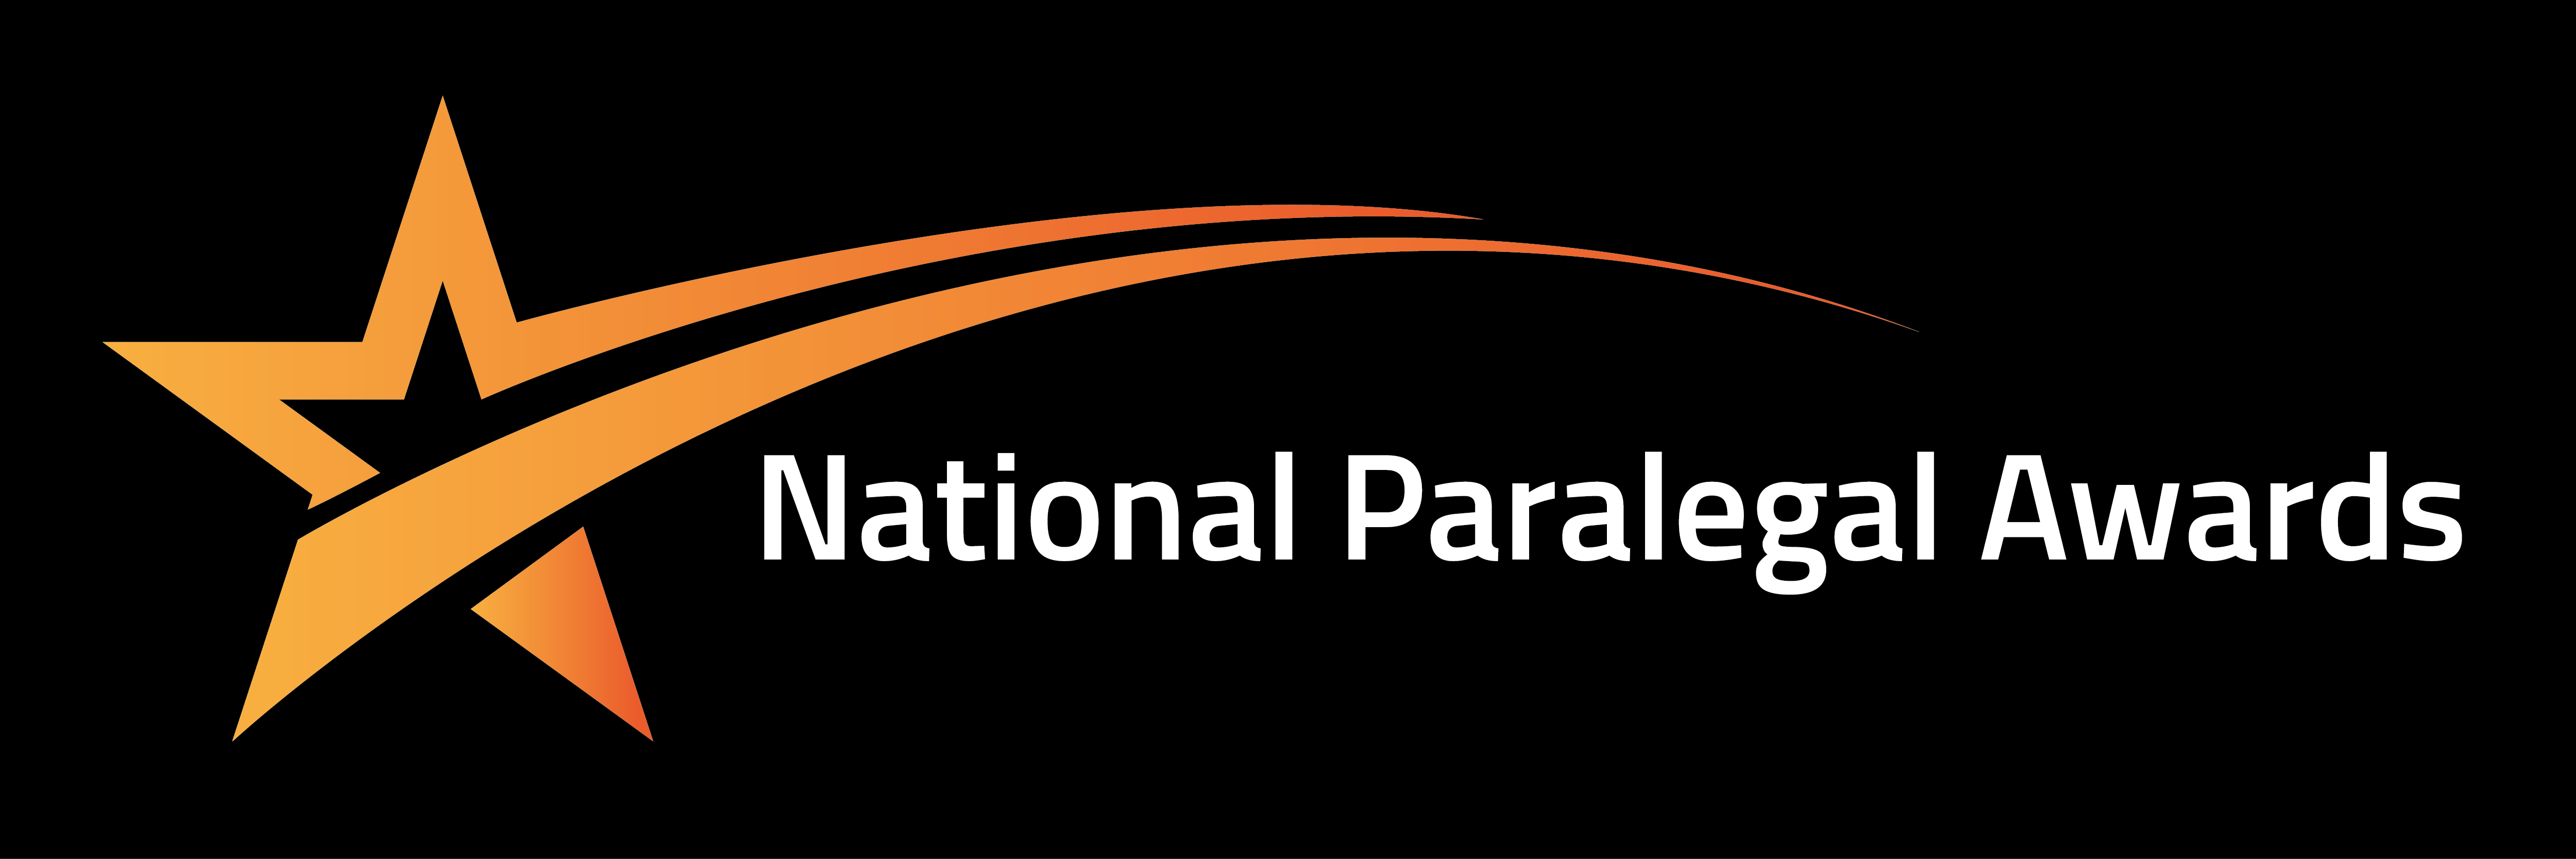 national-paralegal-awards-2019